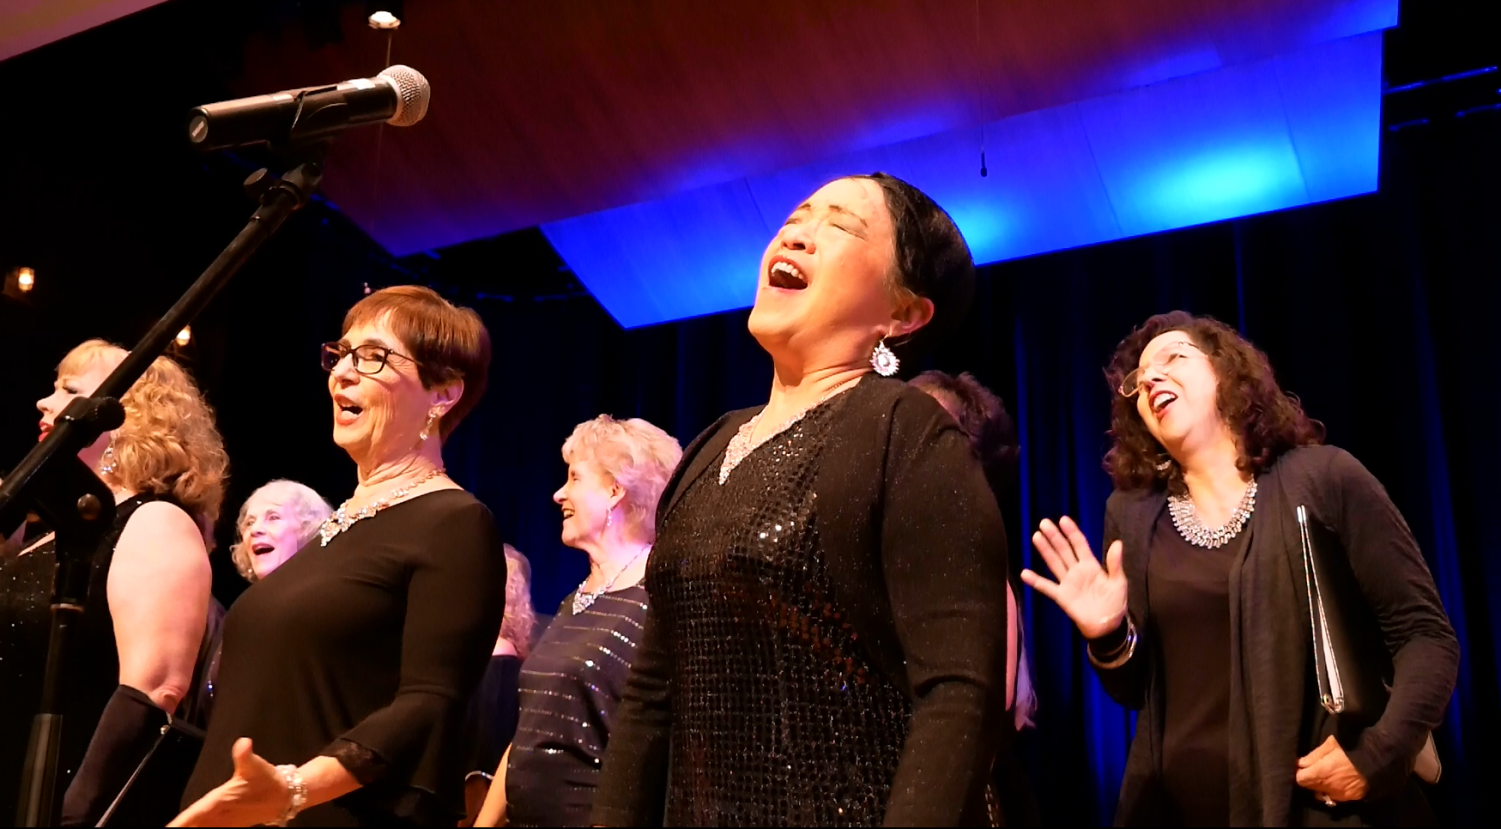 Music filled the air in the OAB during NEw Wrinkles performance on Frisay, Oct. 26, 2019. Each cast member performed a song from the 20th century